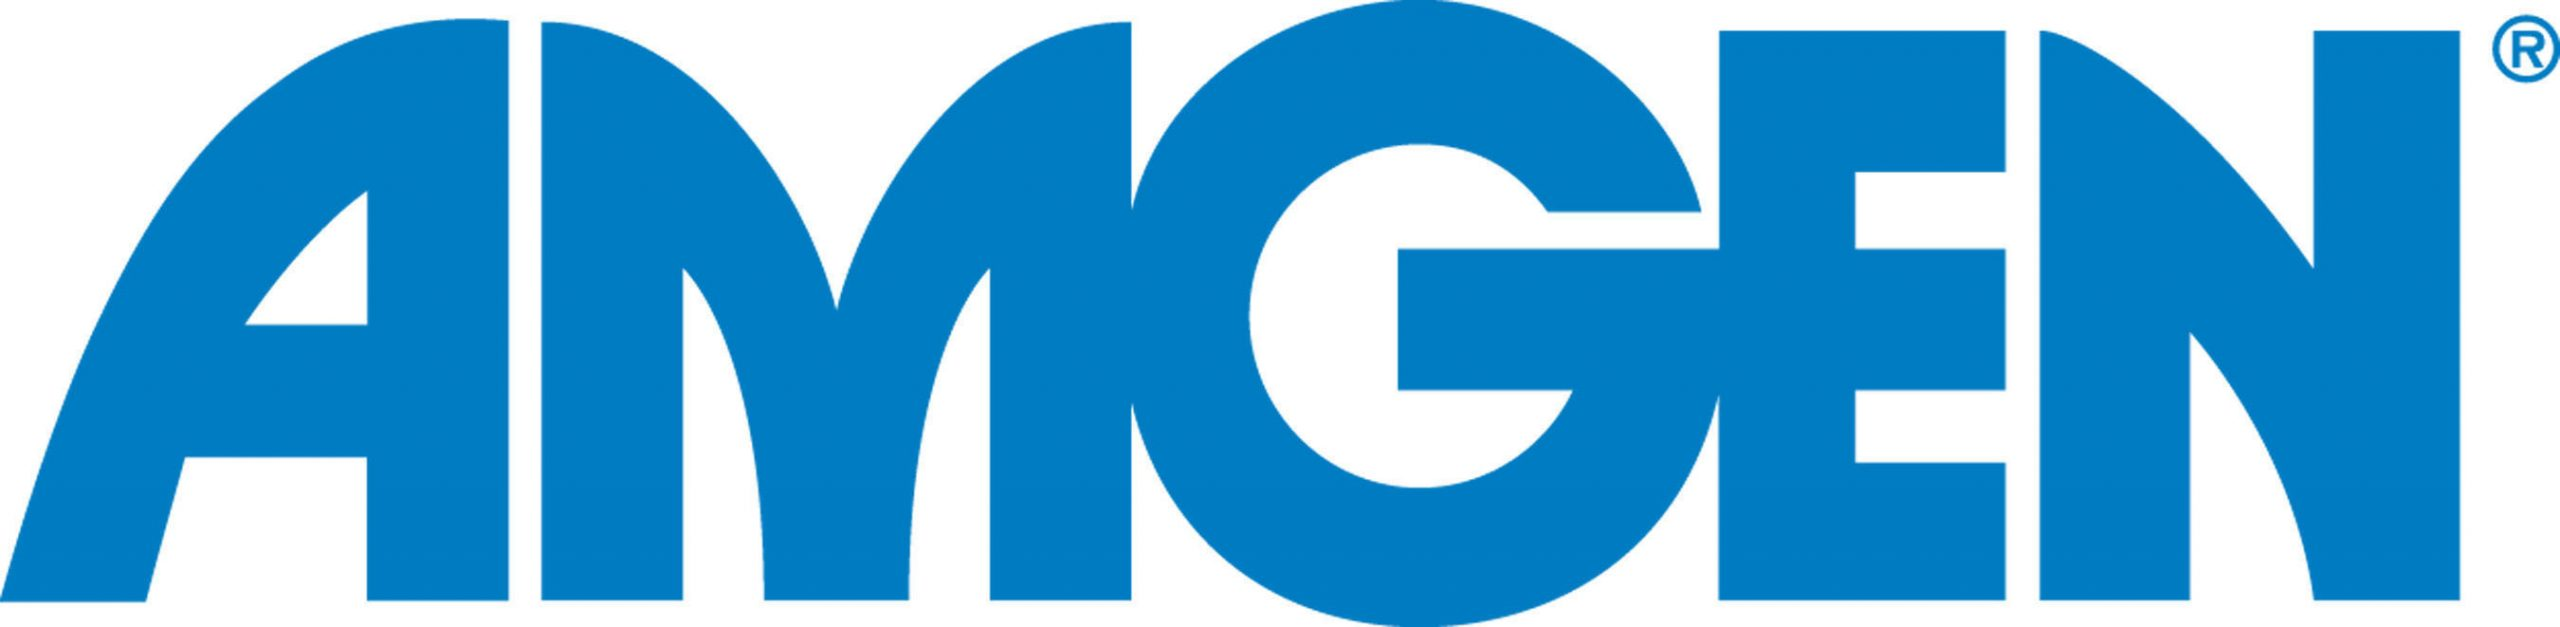 Amgen Licenses AMG 634, An Investigational Treatment For Tuberculosis And Leprosy, To Medicines Development for Global Health